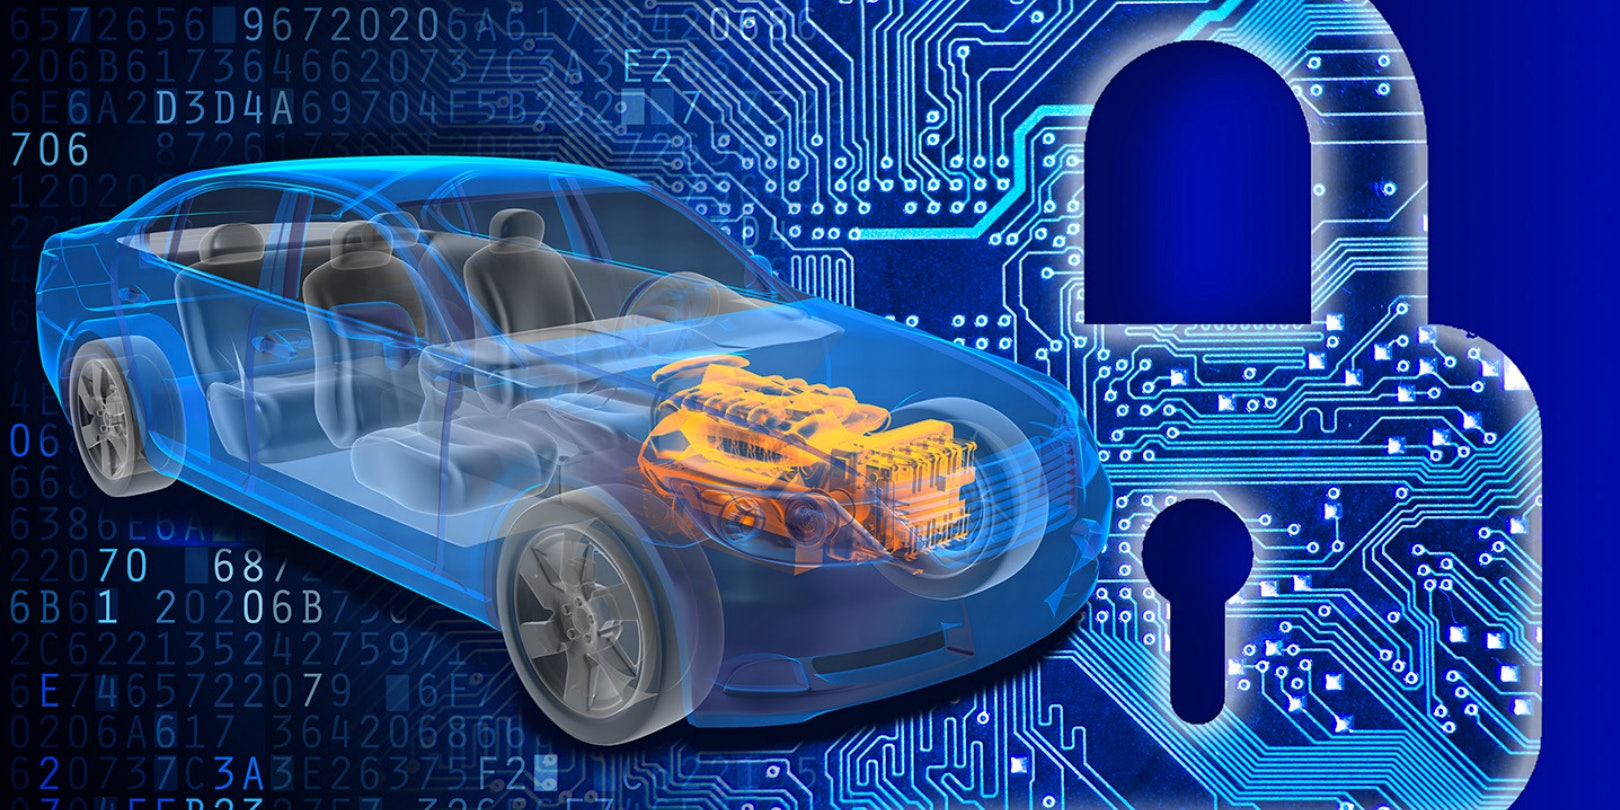 The National Highway Traffic Safety Administration released a set of guidelines on how to improve car cybersecurity.